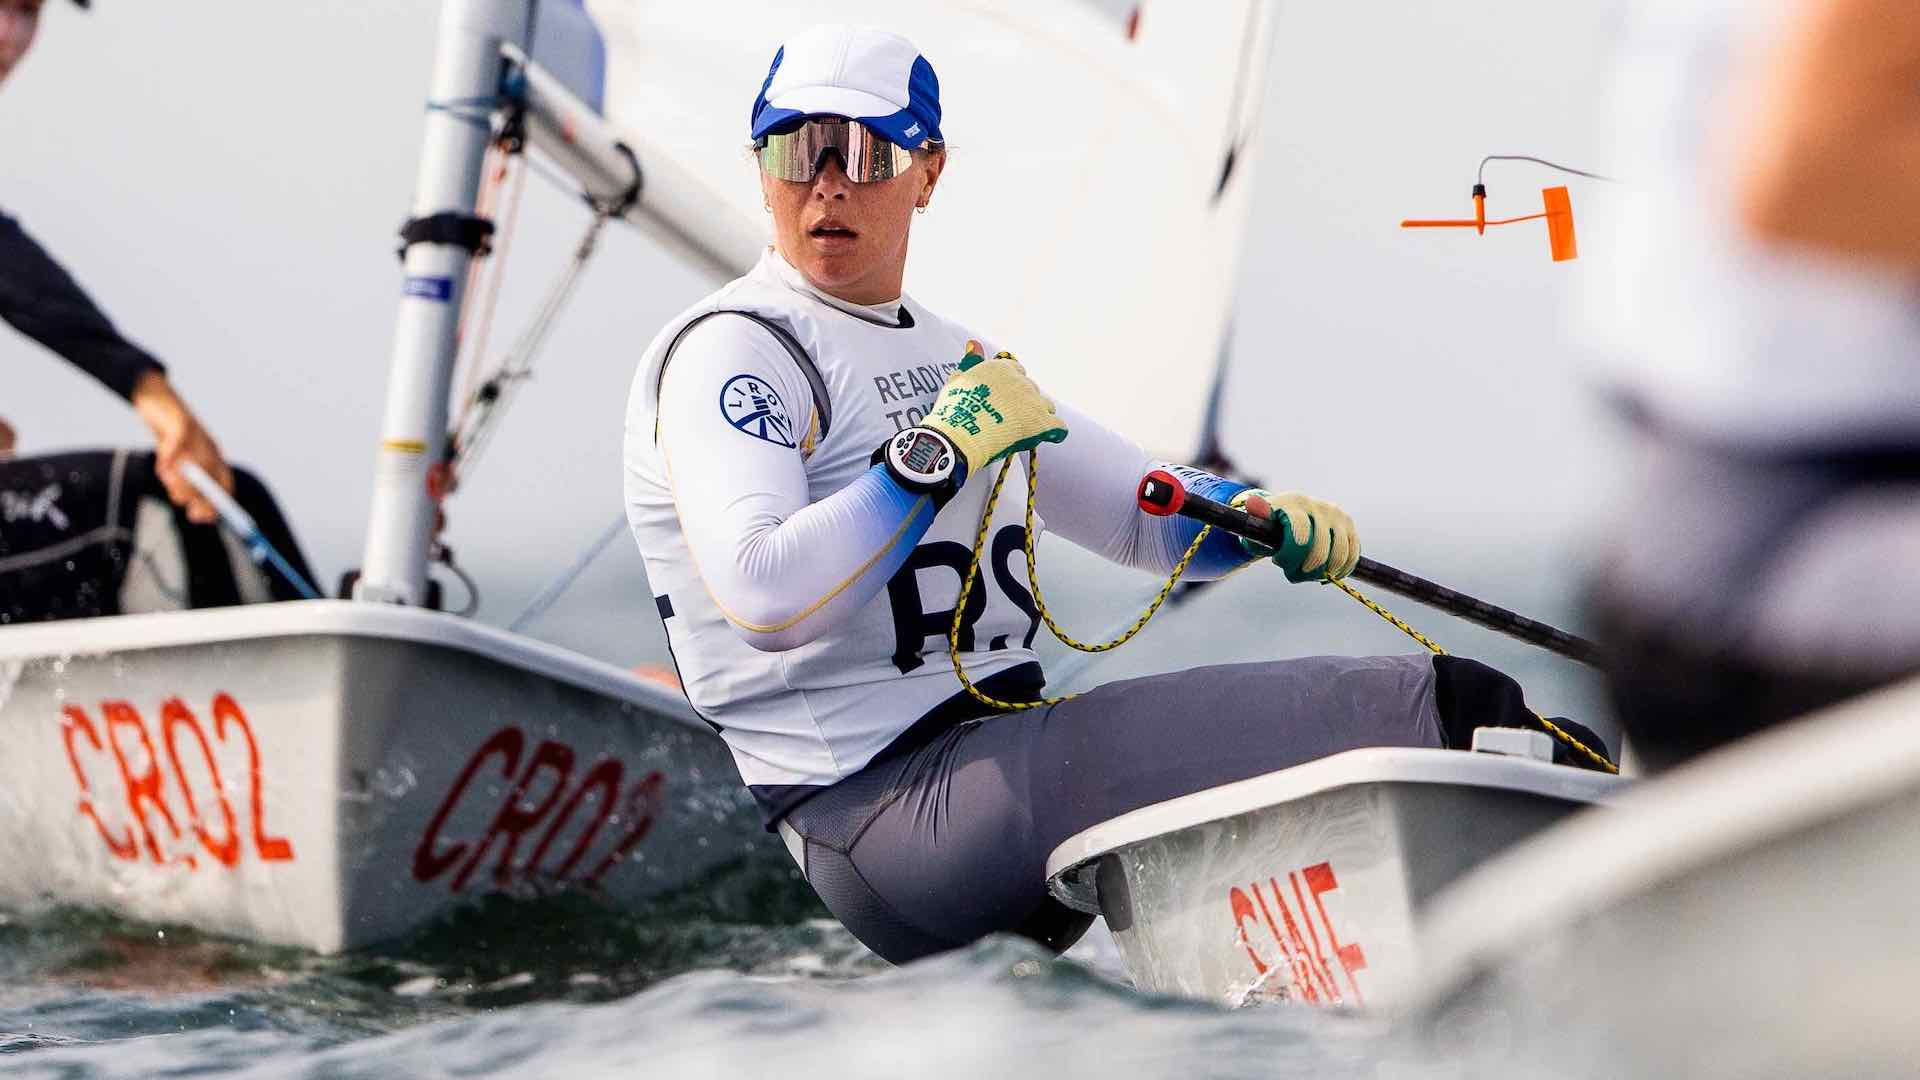 Ready Steady Tokio Sailing 2019. ©PEDRO MARTINEZ/SAILING ENERGY/WORLD SAILING 18 August, 2019.